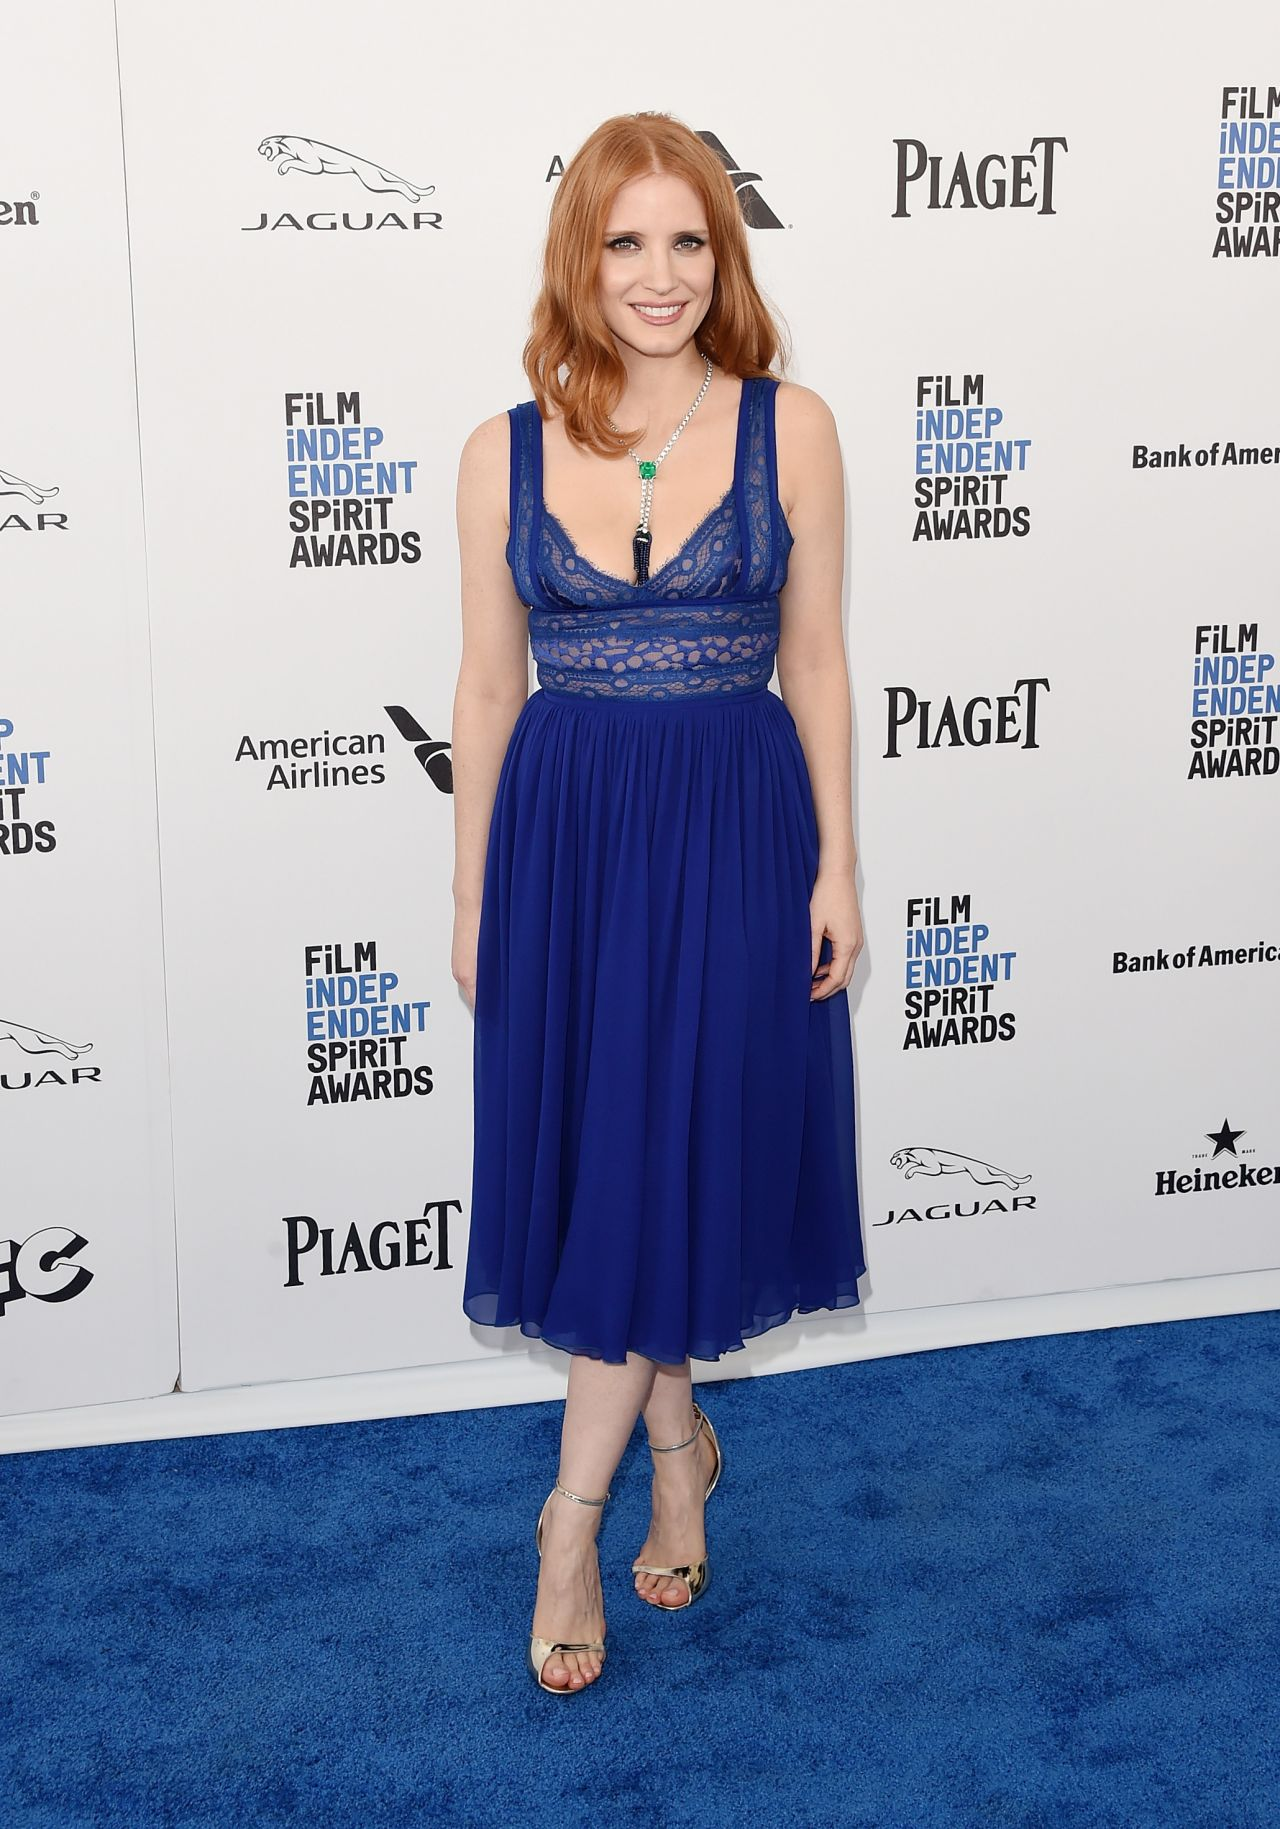 jessica-chastain-2016-film-independent-spirit-awards-in-santa-monica-ca-7